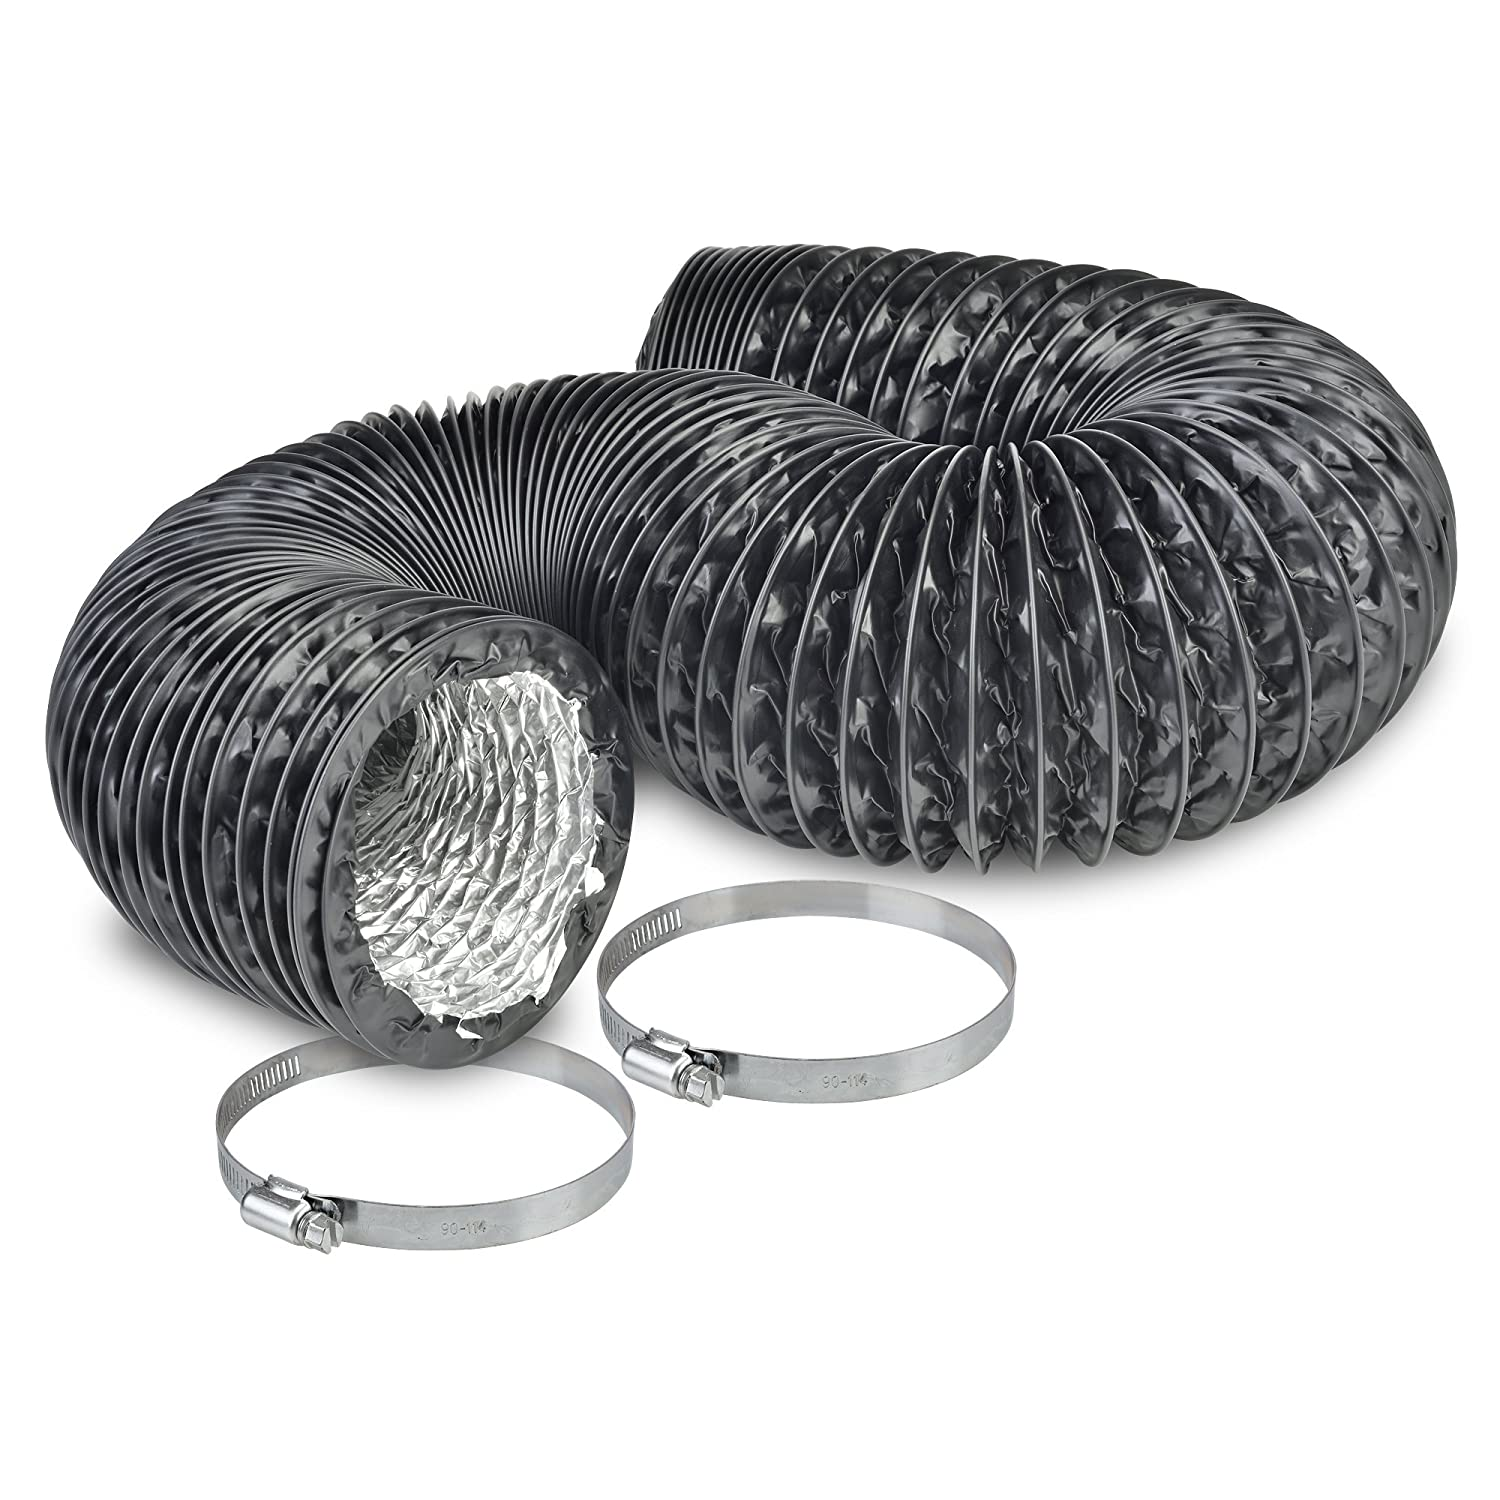 """4"""" Air Duct - 8 FT Long, Black Flexible Ducting with 2 Clamps, 4 Layer HVAC Ventilation Air Hose - Great for Grow Tents, Green Houses, House Vent Register Lines"""